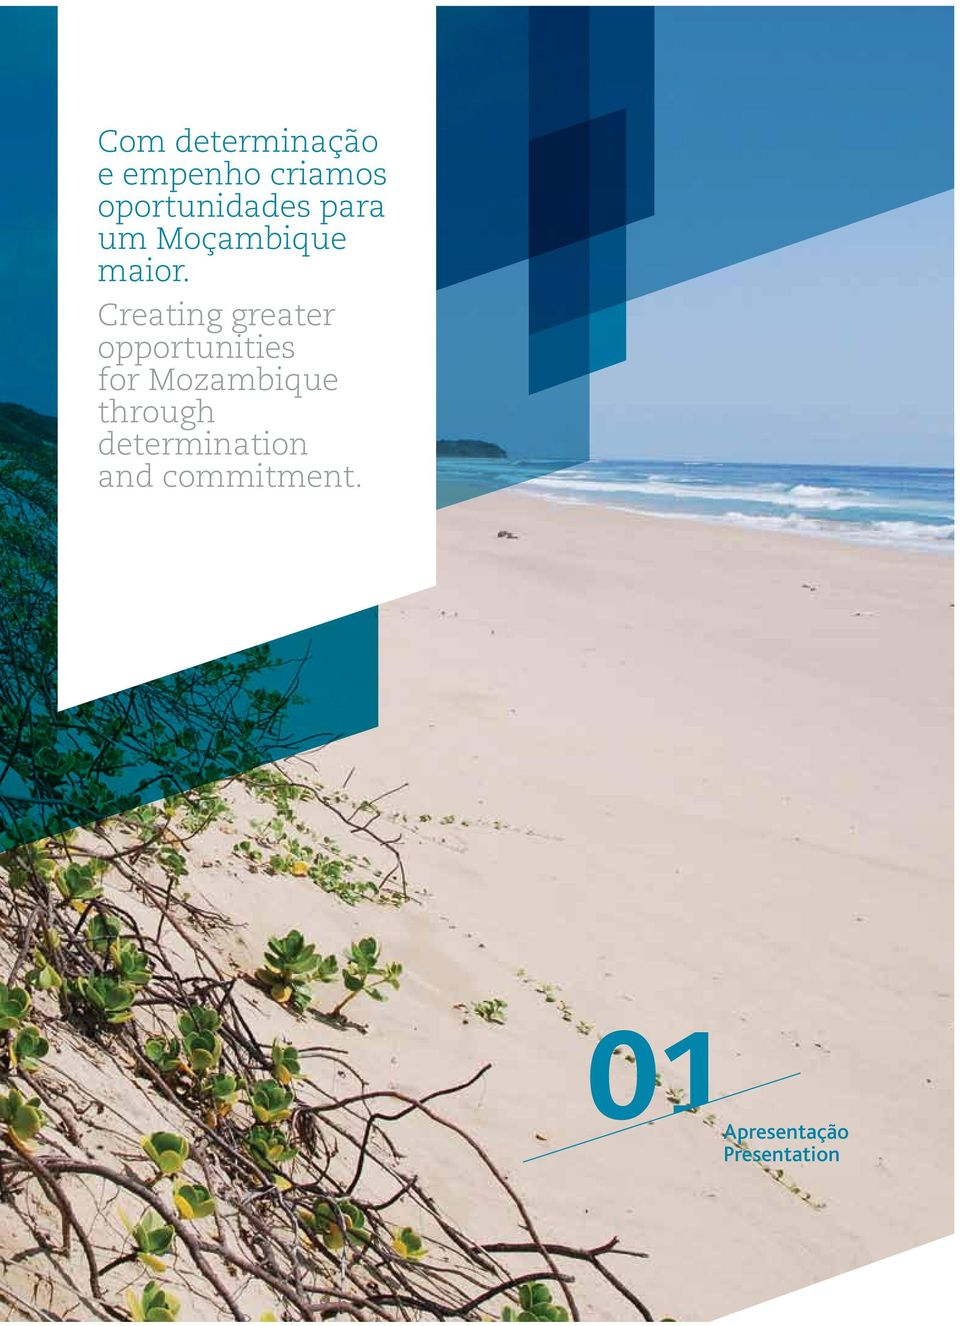 Creating greater opportunities for Mozambique